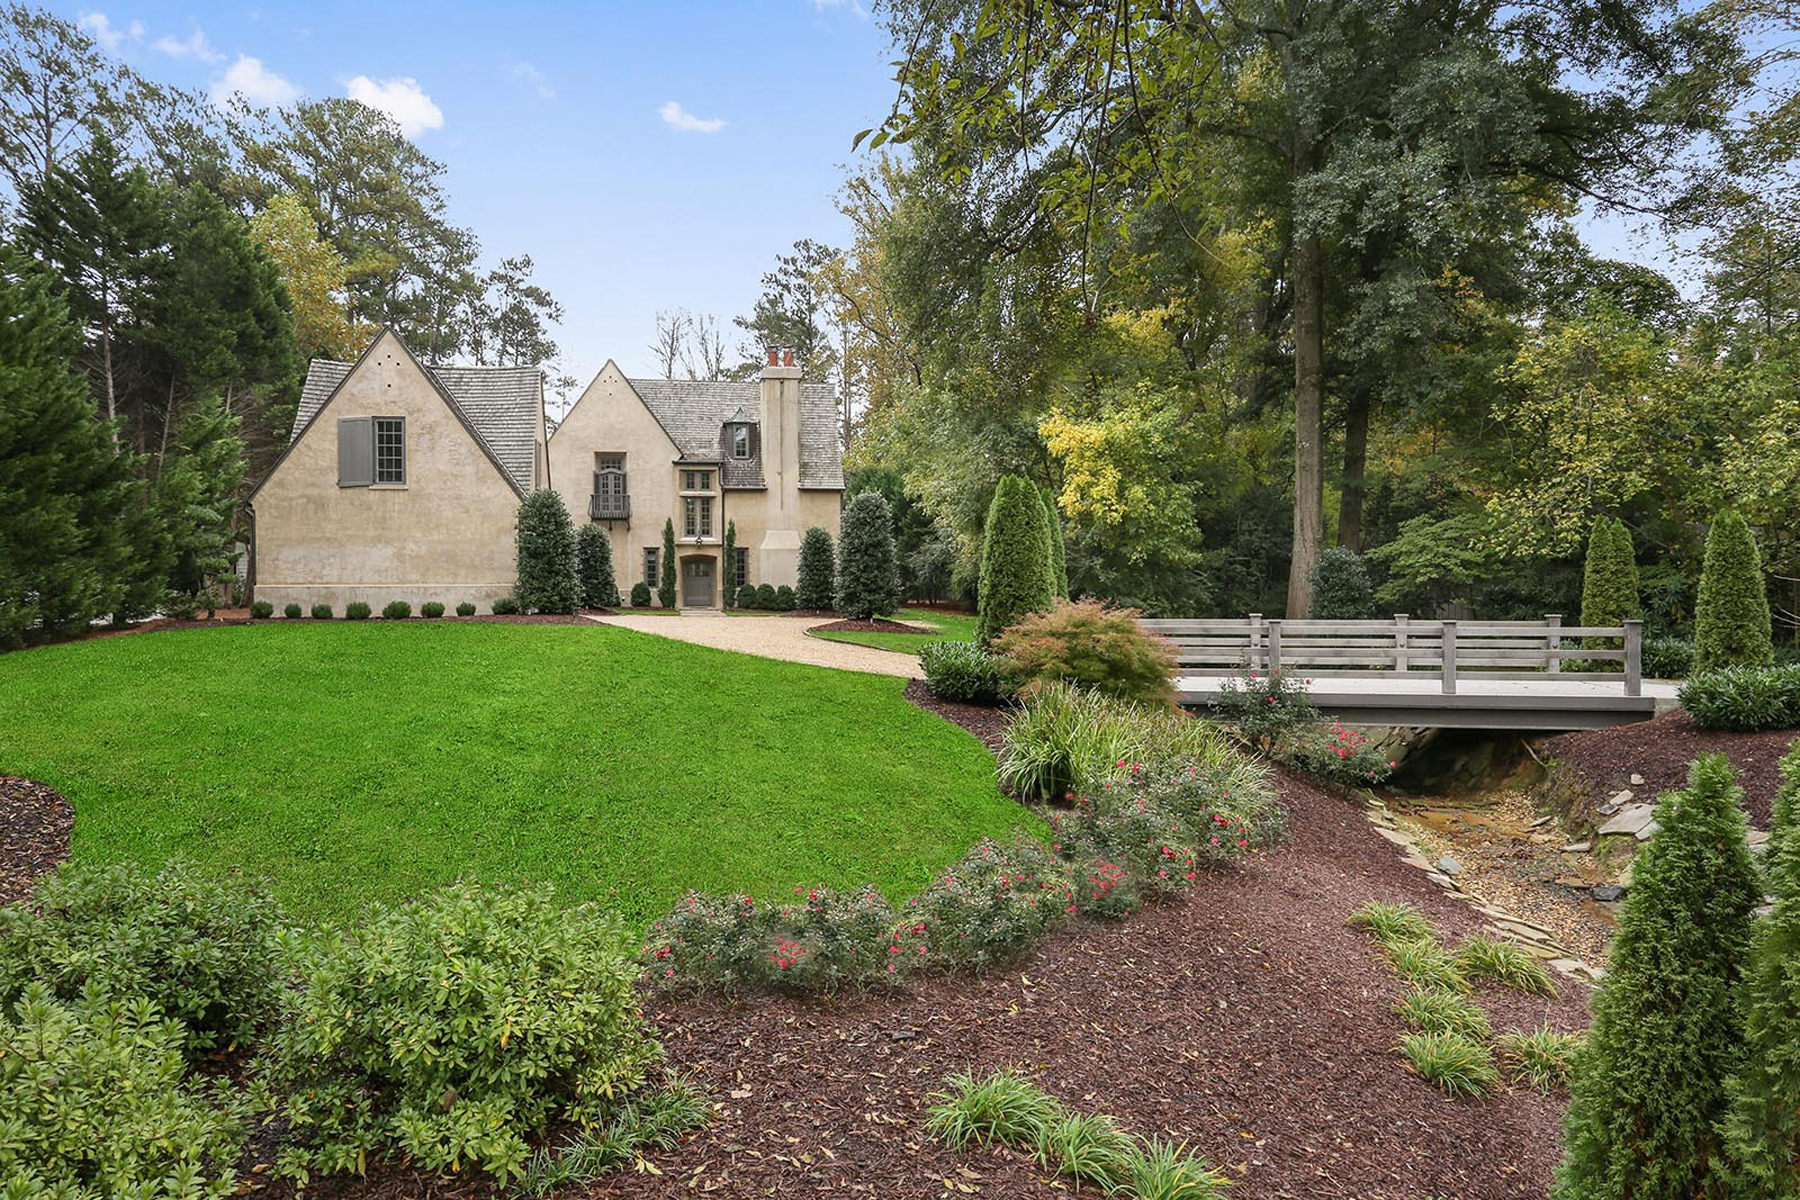 Single Family Home for Sale at Stunning And Immaculate Home Close To Chastain Park 252 Pineland Rd Atlanta, Georgia 30342 United States